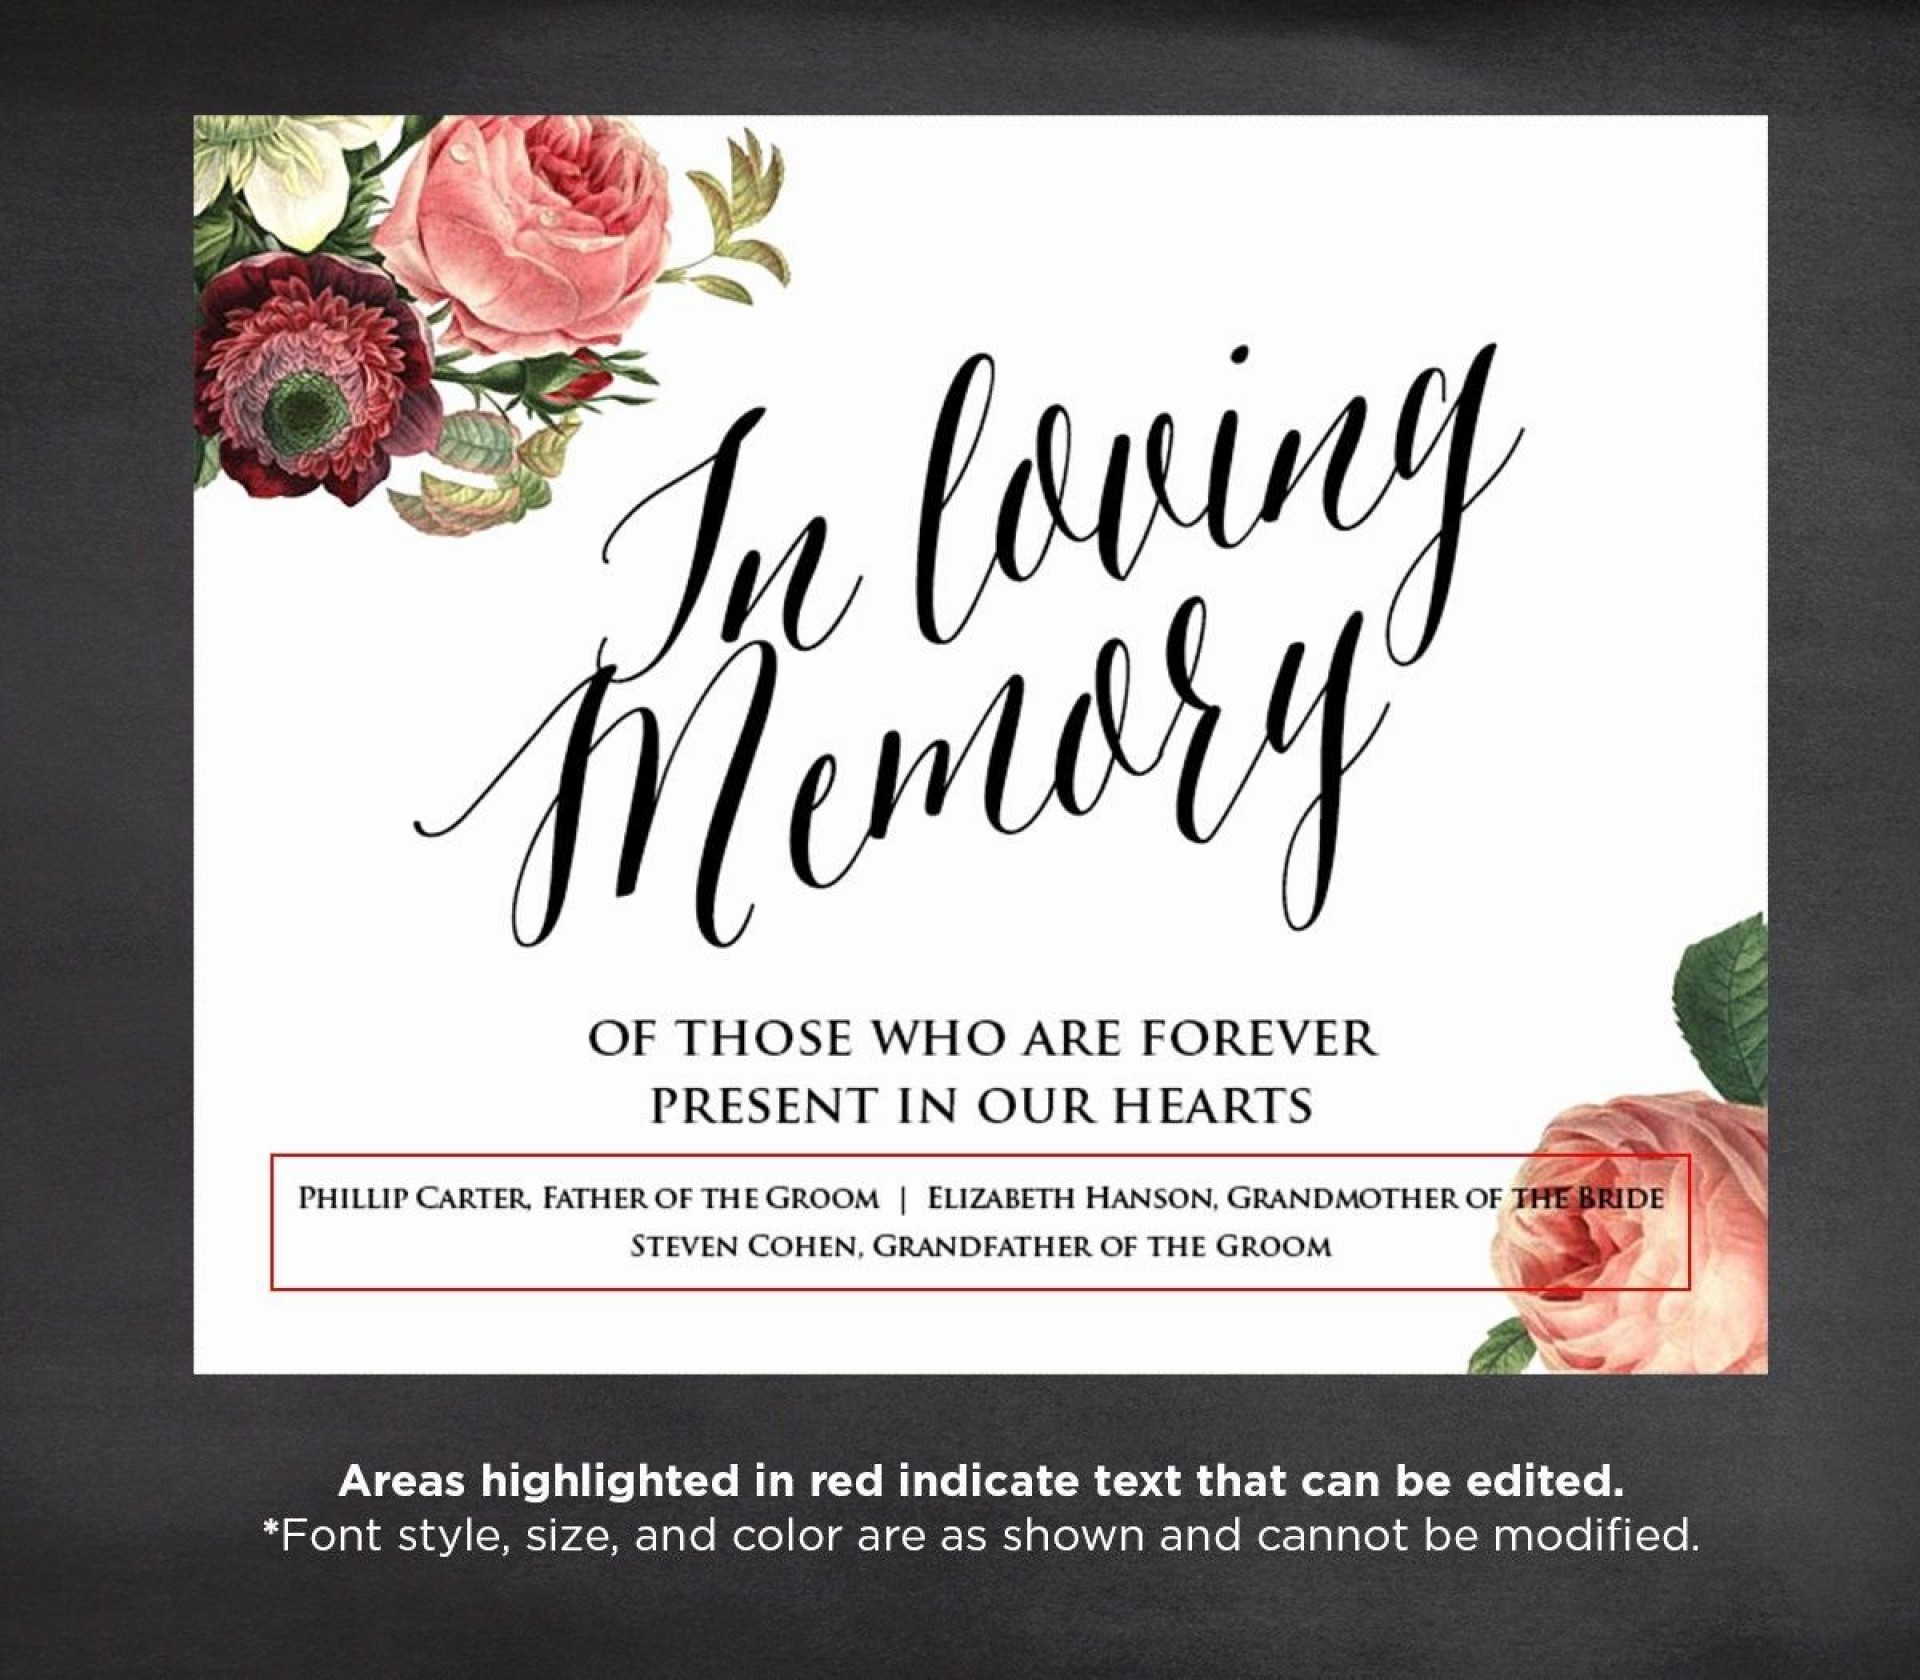 006 Impressive In Loving Memory Powerpoint Template Free Picture 1920